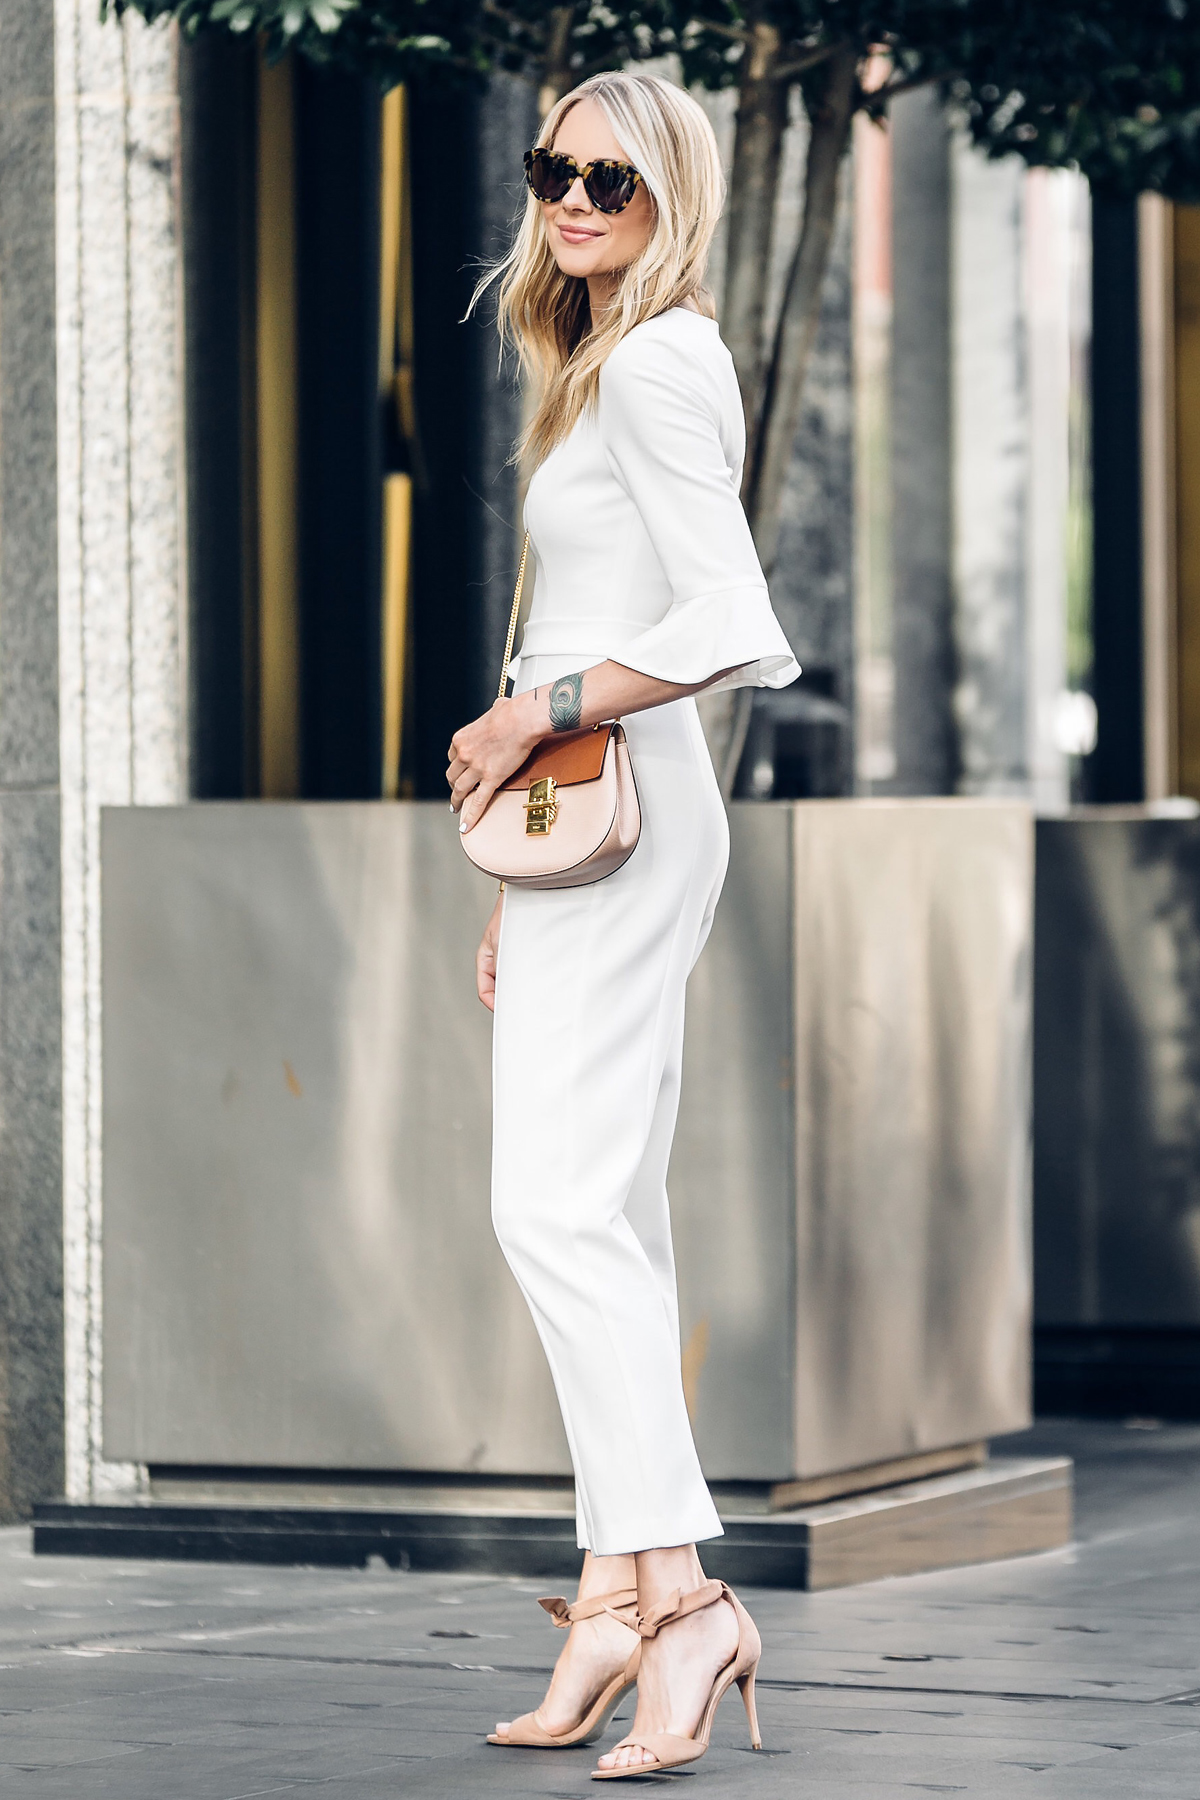 Fashion Jackson, Dallas Blogger, Fashion Blogger, Street Style, Black Halo White Jumpsuit, Chloe Drew Handbag, Tan Ankle Strap Bow Heeled Sandals